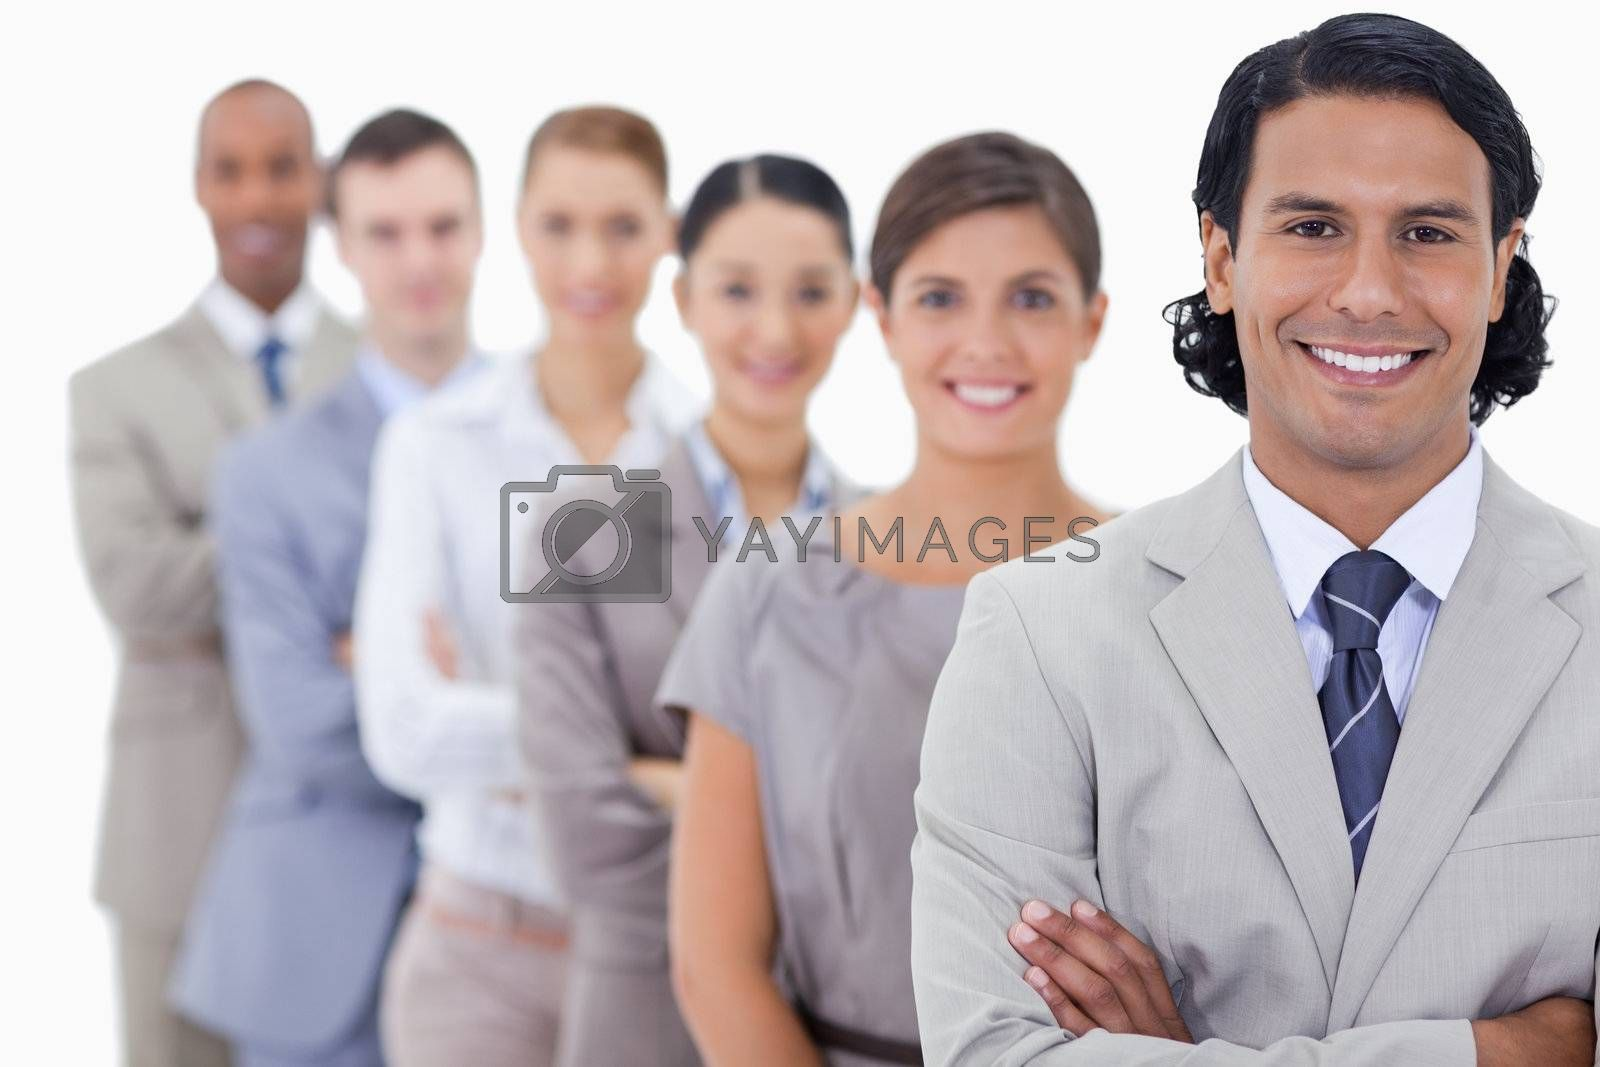 Big close-up of happy workmates in a single line with focus on the first man with his arms crossed.